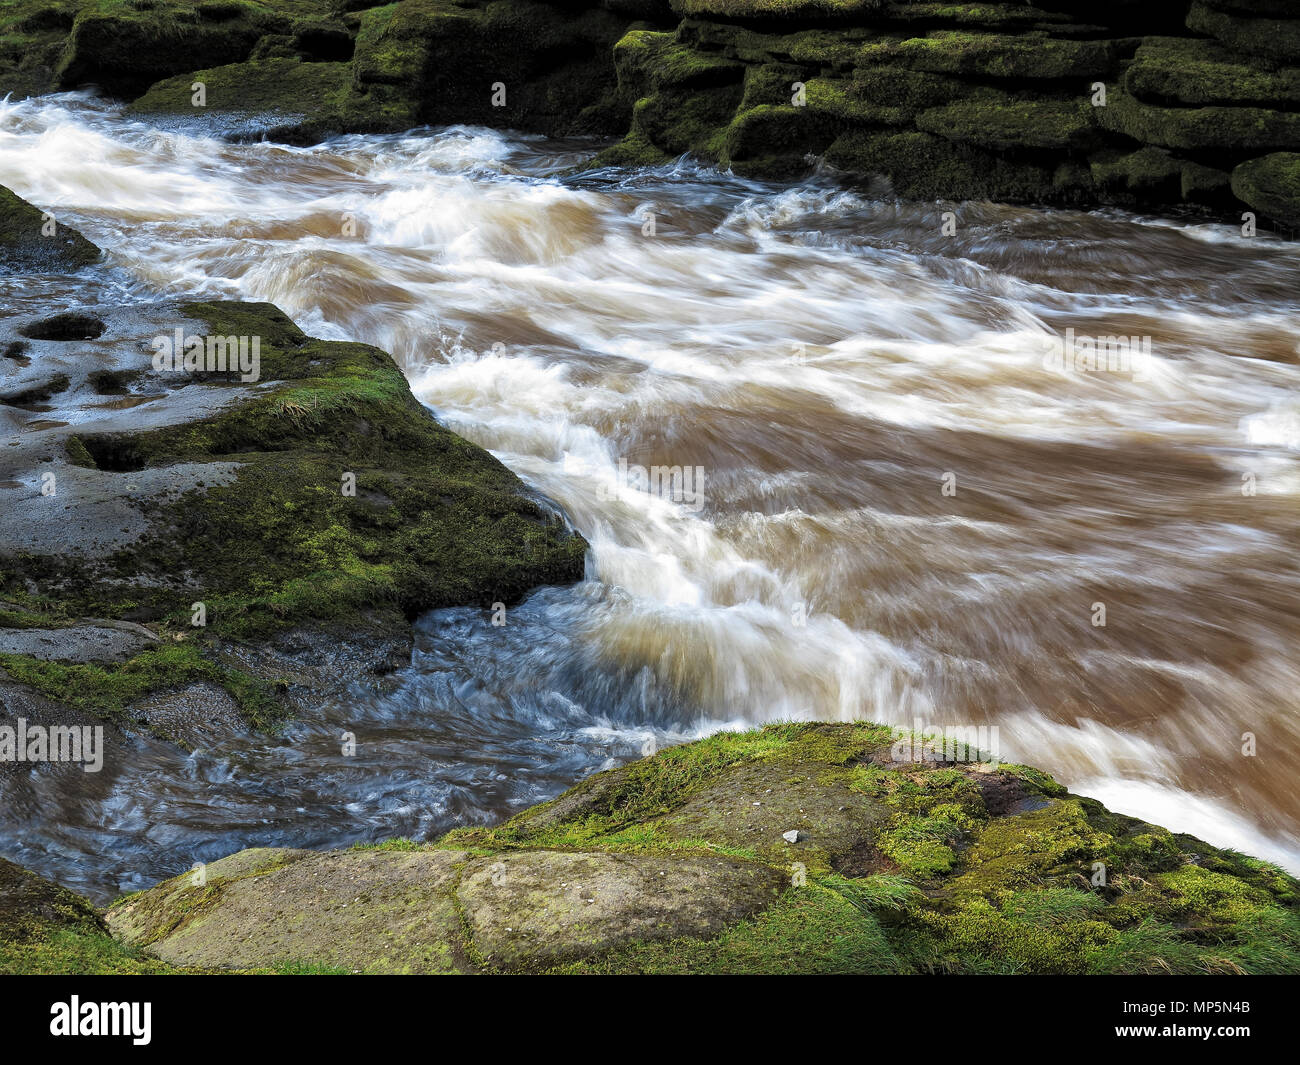 The swirling waters of The Strid, near Bolton Abbey, Yorkshire Dales - Stock Image